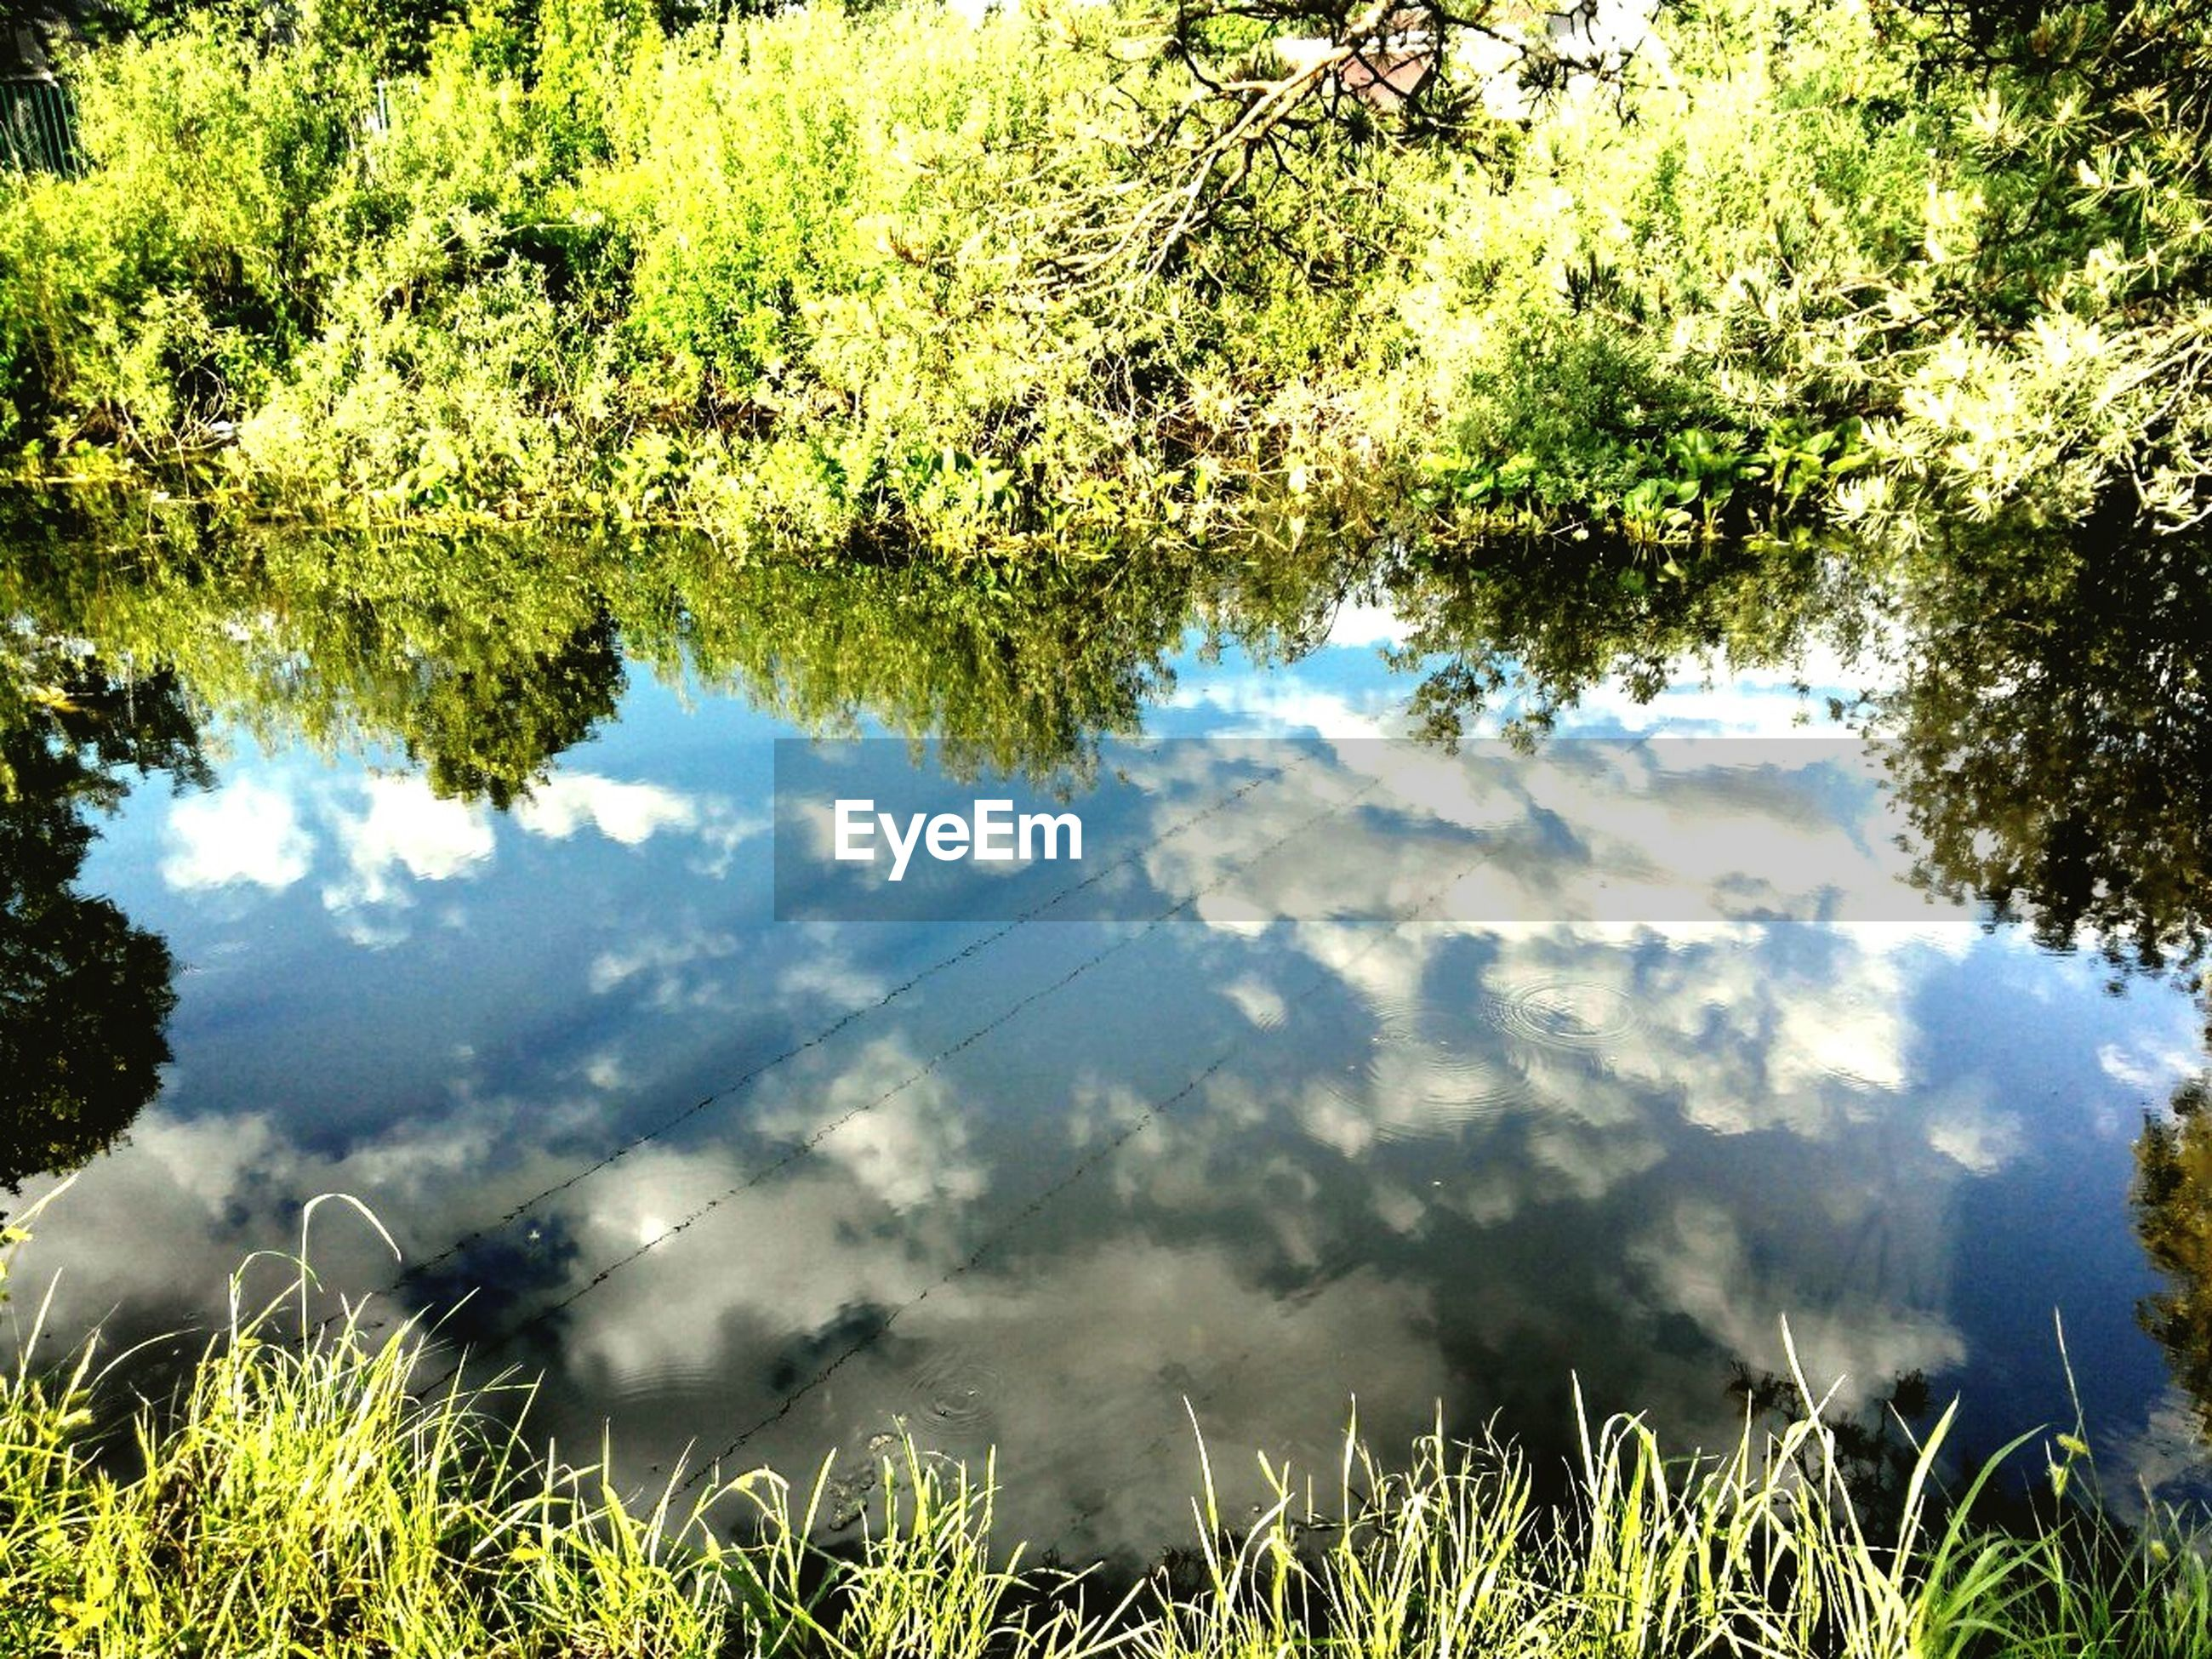 tranquility, water, tranquil scene, grass, lake, reflection, scenics, sky, beauty in nature, tree, nature, growth, green color, plant, cloud - sky, idyllic, landscape, day, outdoors, cloud